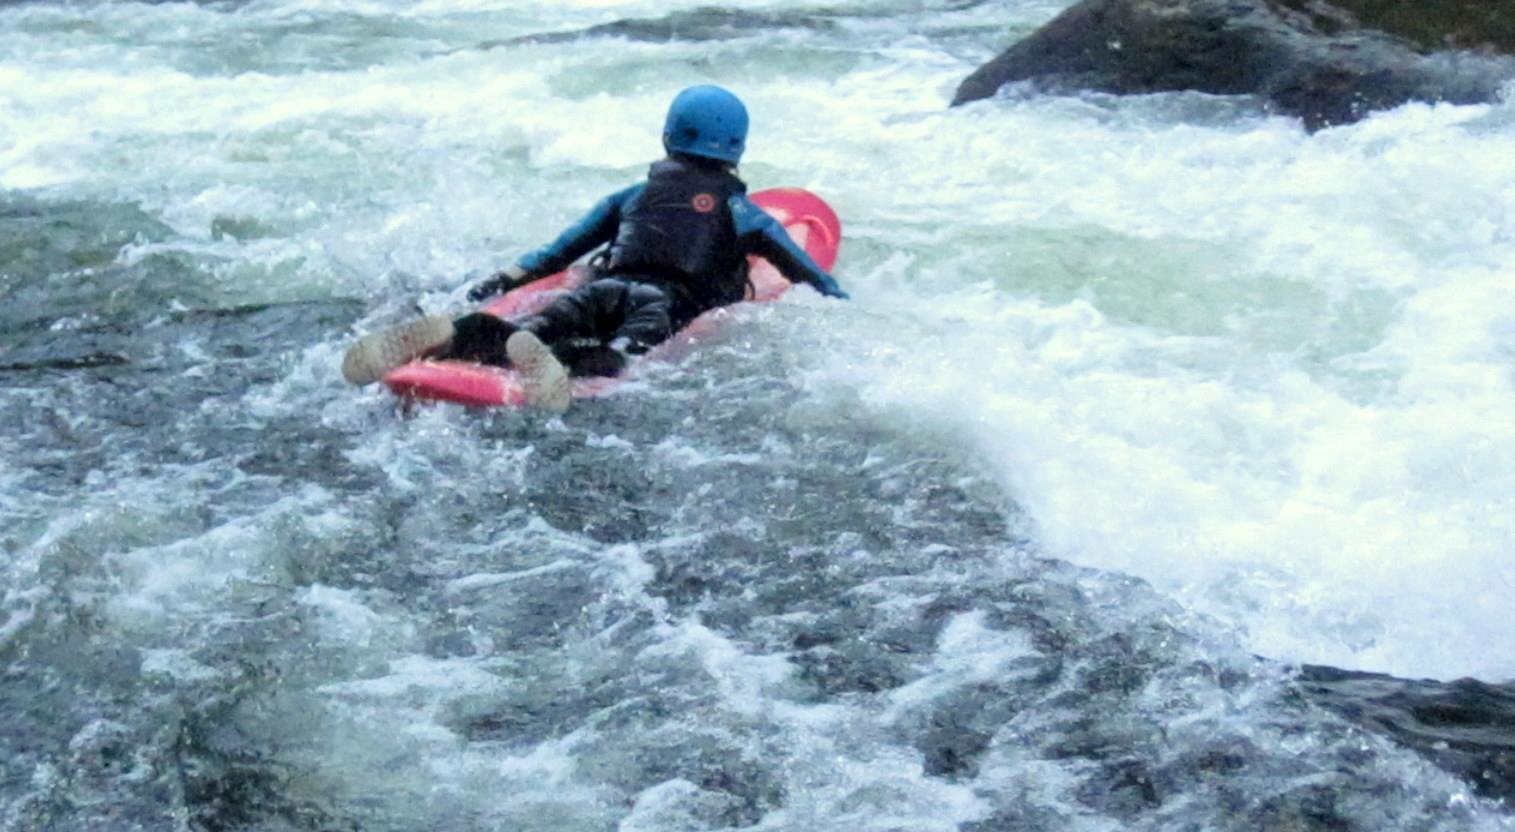 Bellyaking on the Nantahala River